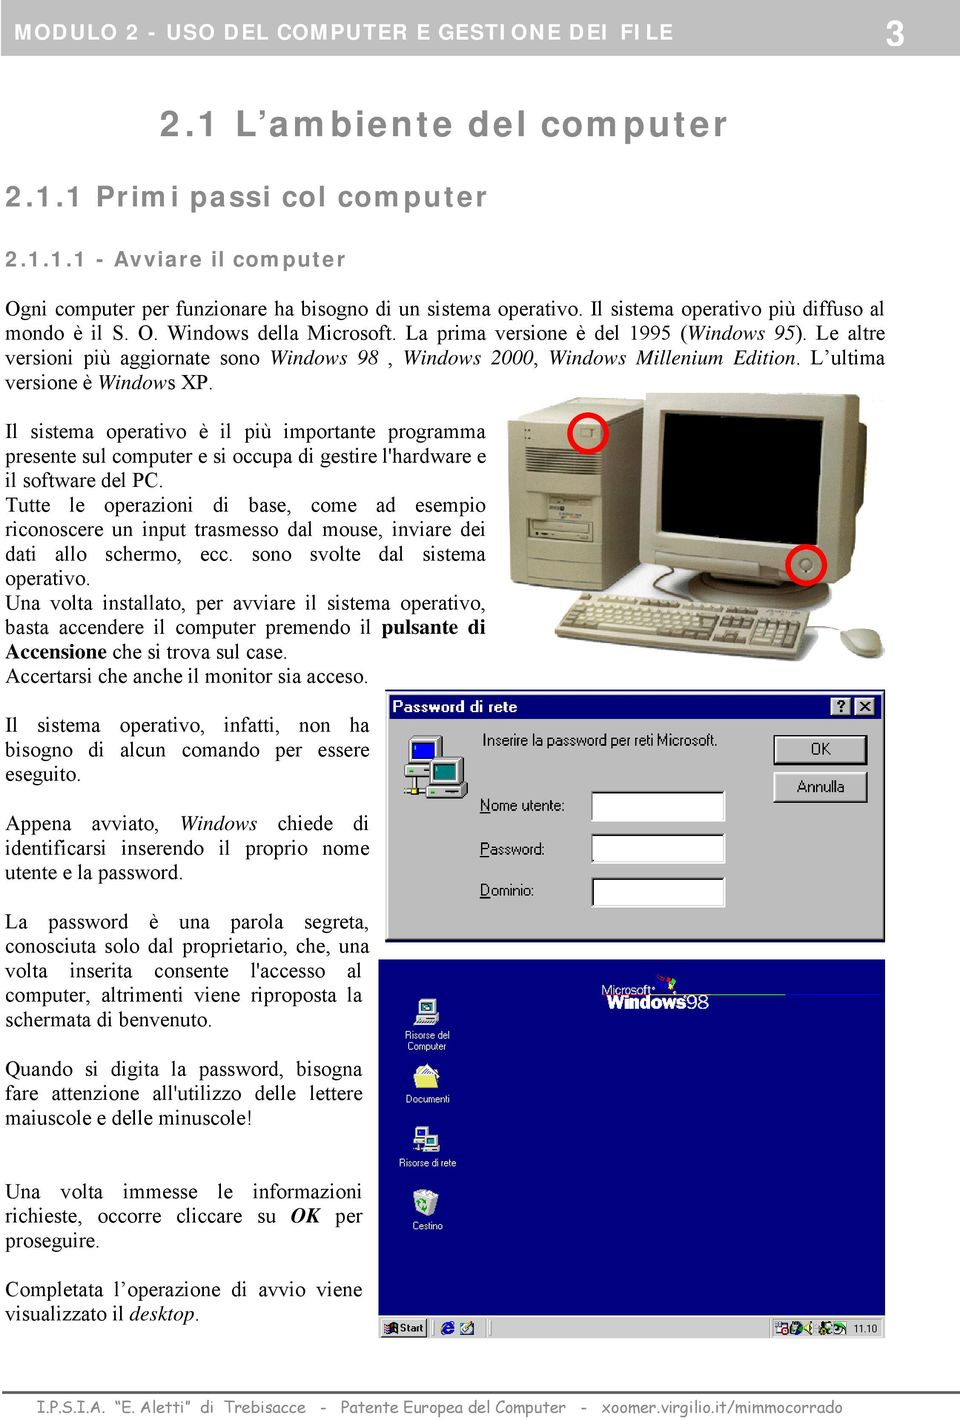 Le altre versioni più aggiornate sono Windows 98, Windows 2000, Windows Millenium Edition. L ultima versione è Windows XP.